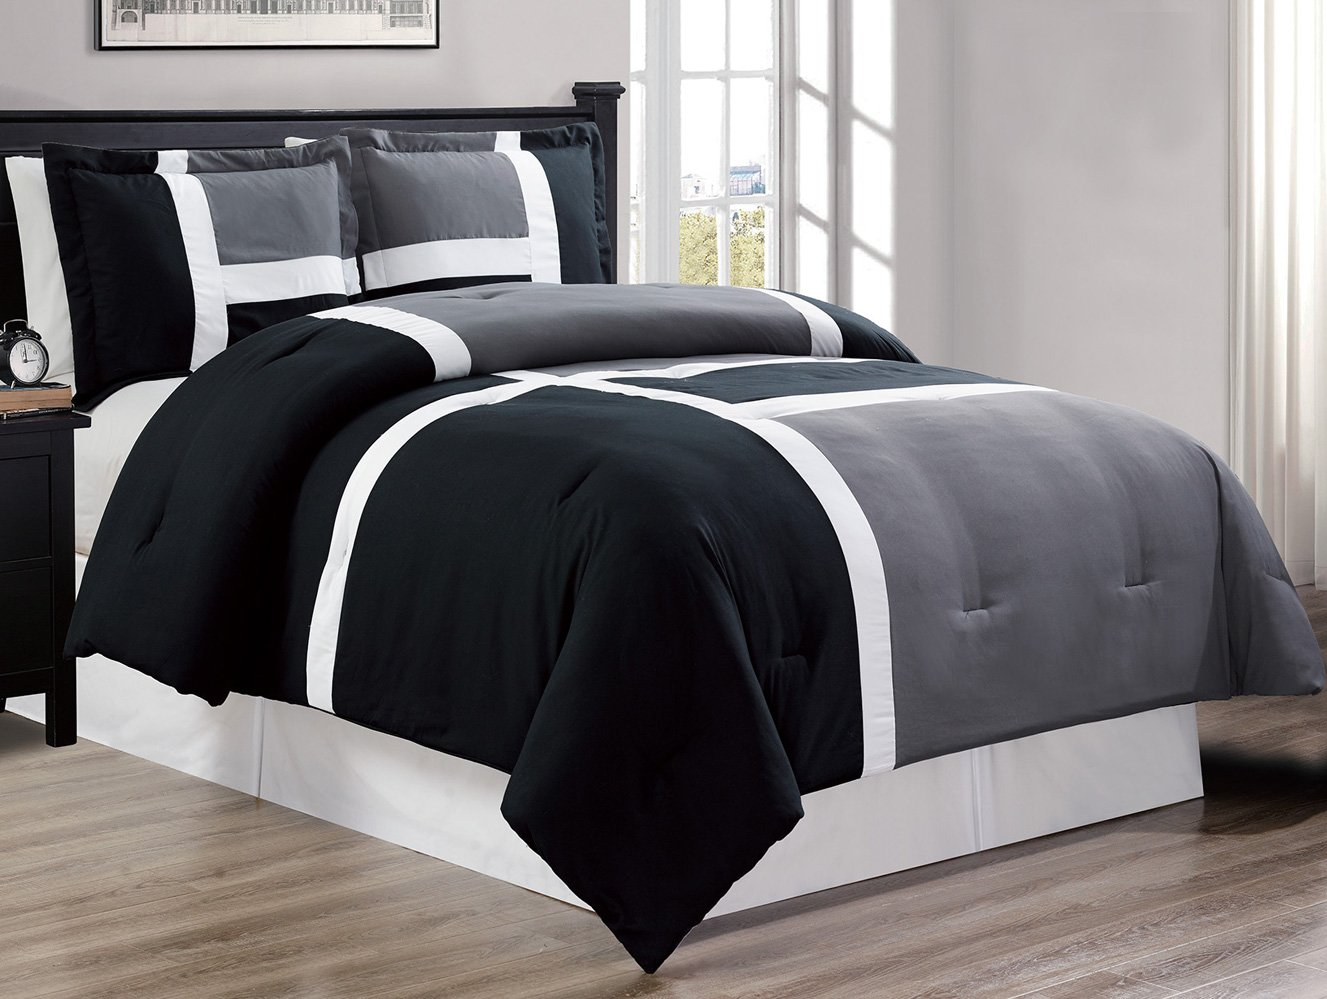 GrandLinen 3-Piece BLACK/GREY/WHITE Color Stripe Duvet Cover set, QUEEN size Includes 1 Cover and 2 Shams - Brushed Microfiber - Luxury, Ultra Soft and Durable